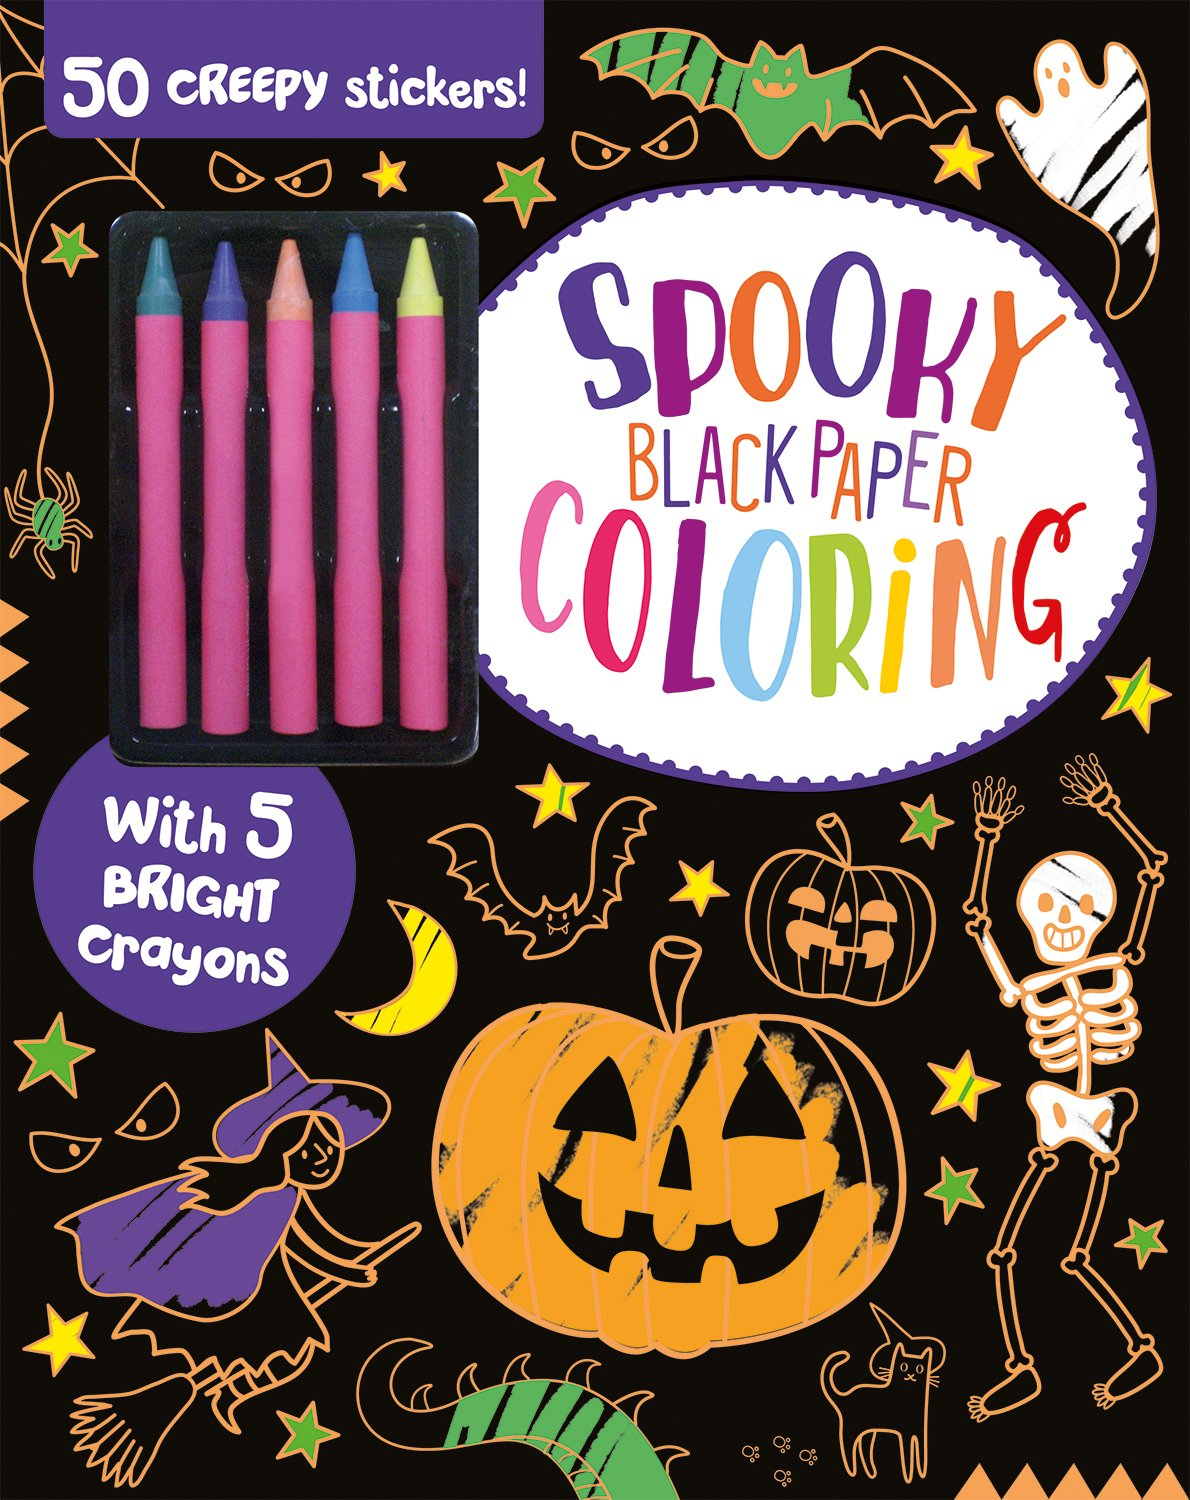 Spooky Black Paper Coloring: 50 Creepy Stickers and 5 Bright Crayons ebook